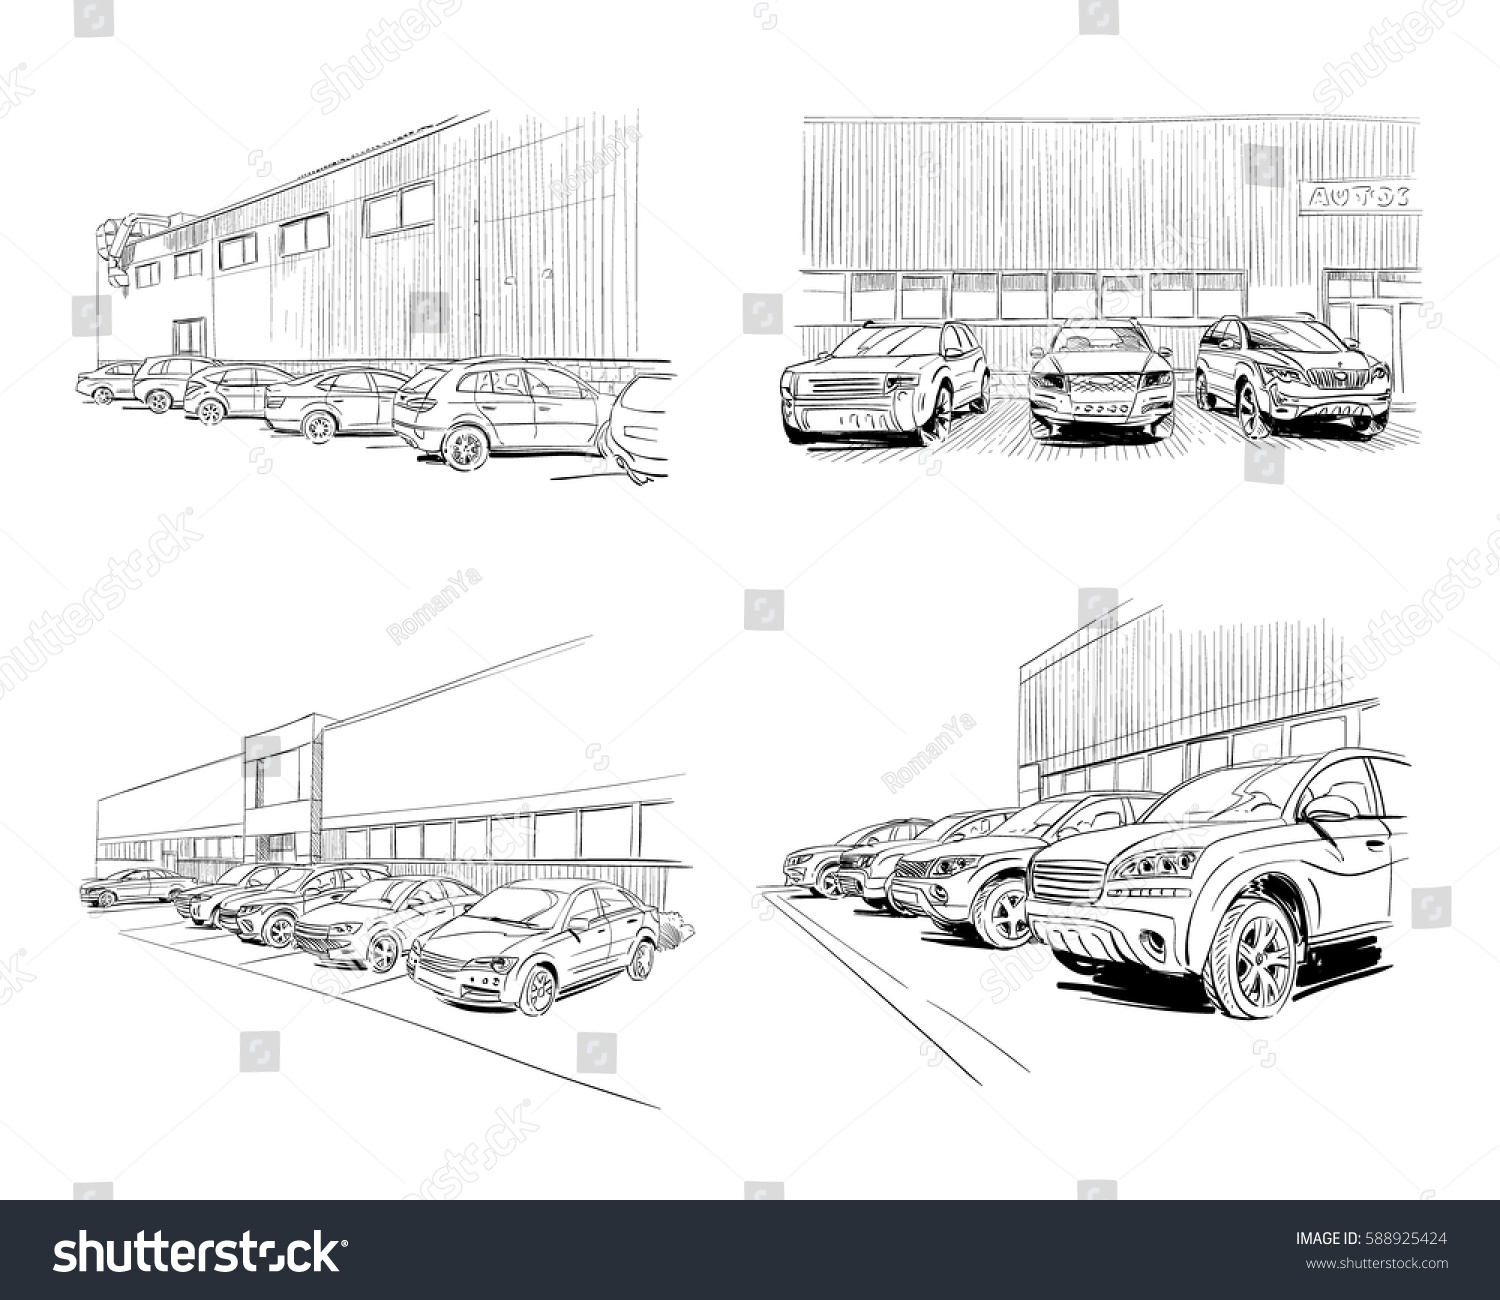 Car showroom exterior design sketch hand stock vector for Car showroom exterior design